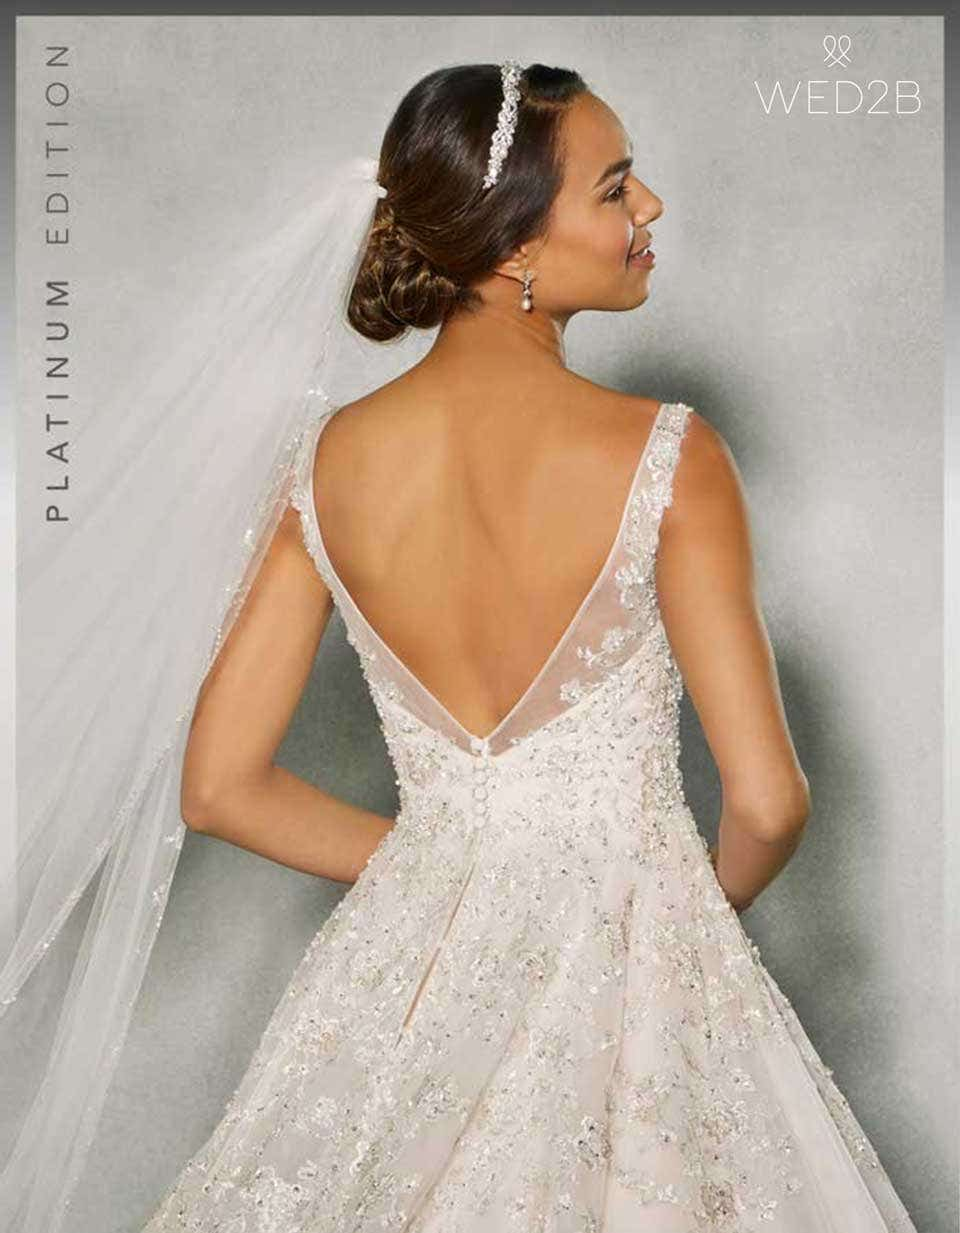 Devotion to detail: Embroidered and detailed wedding dresses | WED2B ...